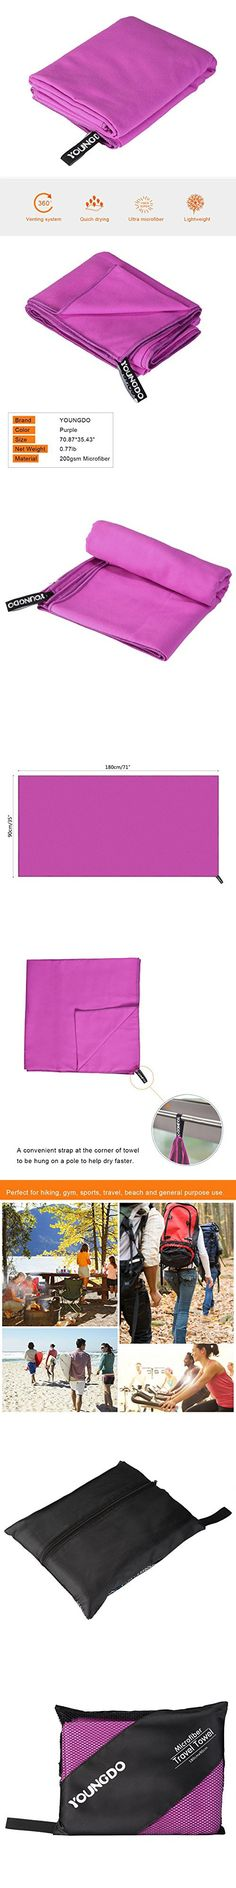 Youngdo Microfibre Towel Travel Towel 180 x 90cm - Quick Dry,Lightweight,Absorbent and Compact with Bag -Sports Towel for sports, gym,golf ,camping, swimming, yoga (Purple)